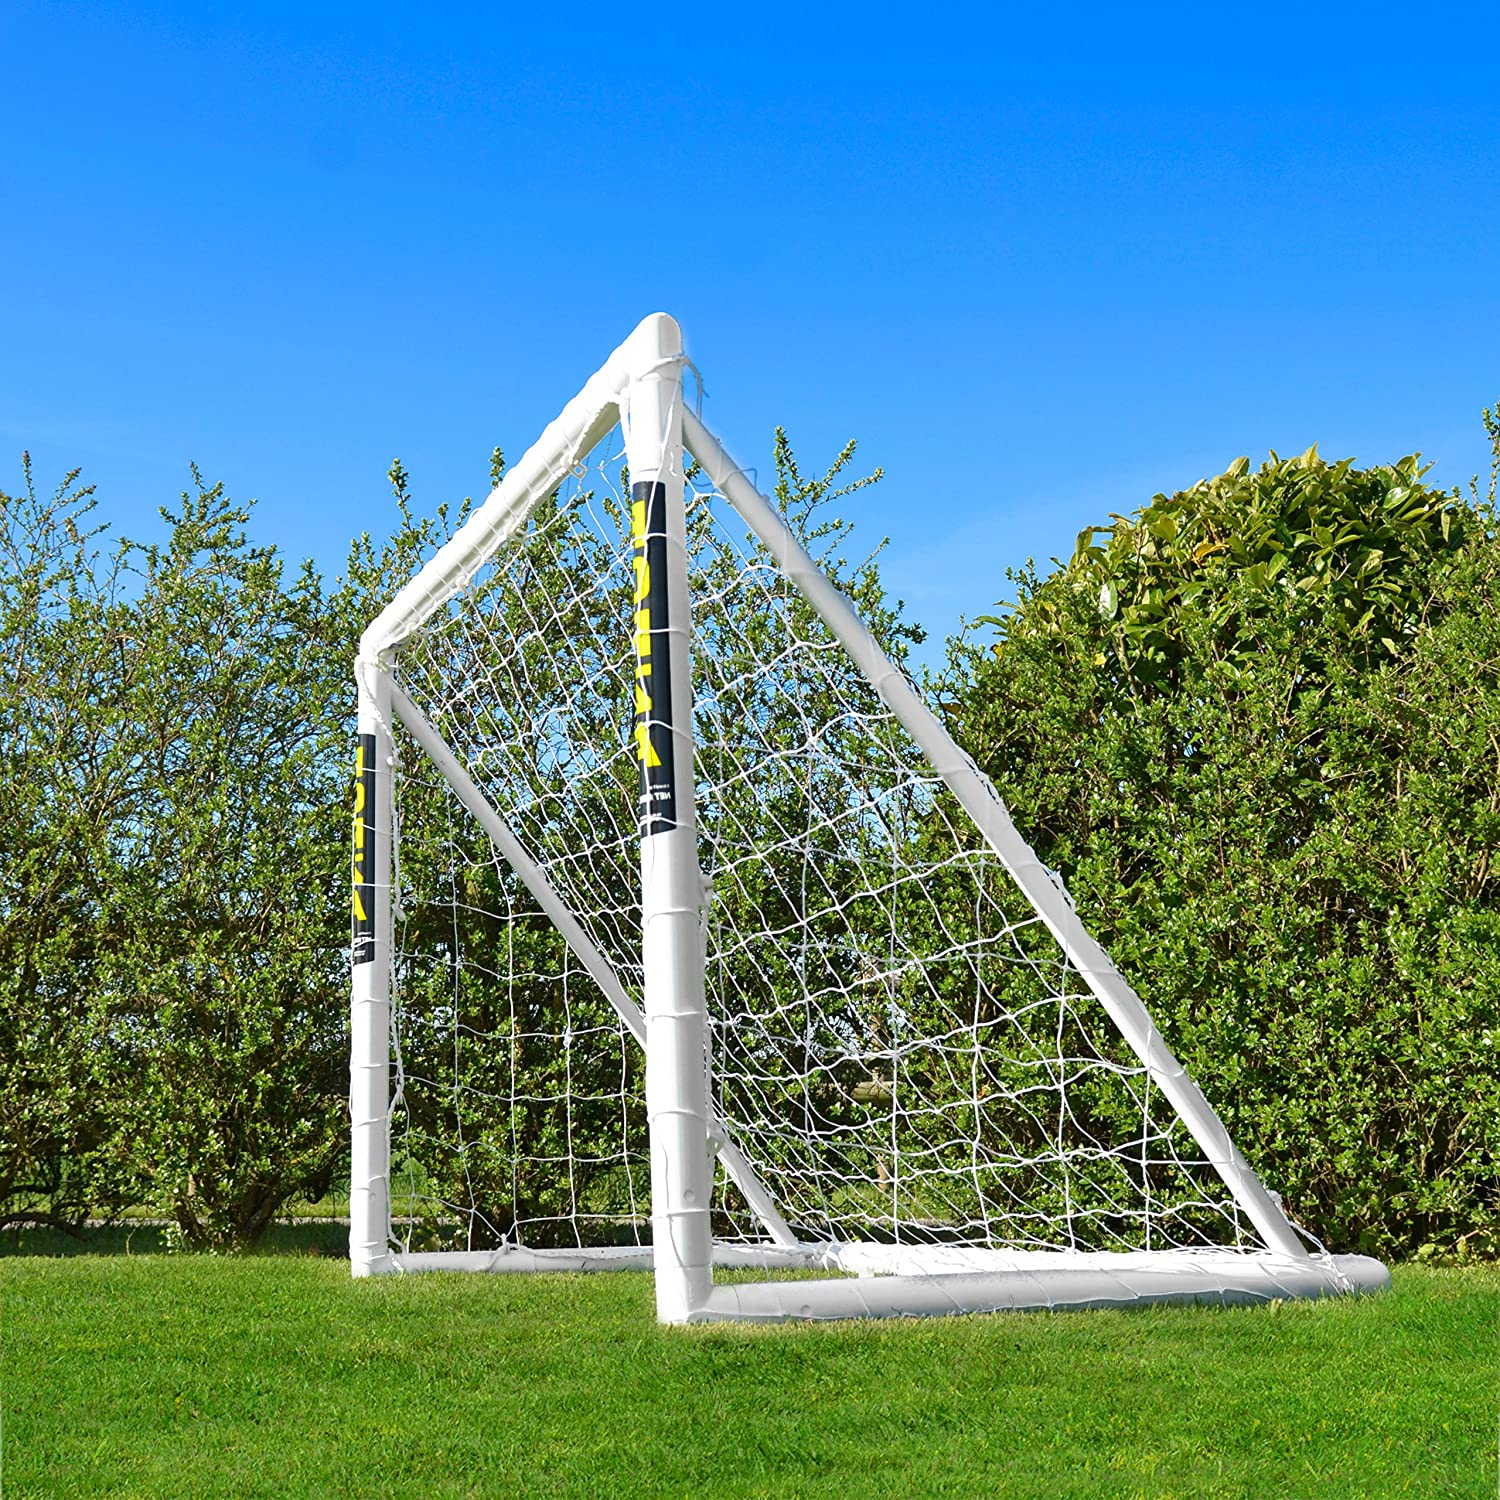 Optional Extras Perfect First Backyard Goal 6ft x 4ft Forza Soccer Goal Post and Net